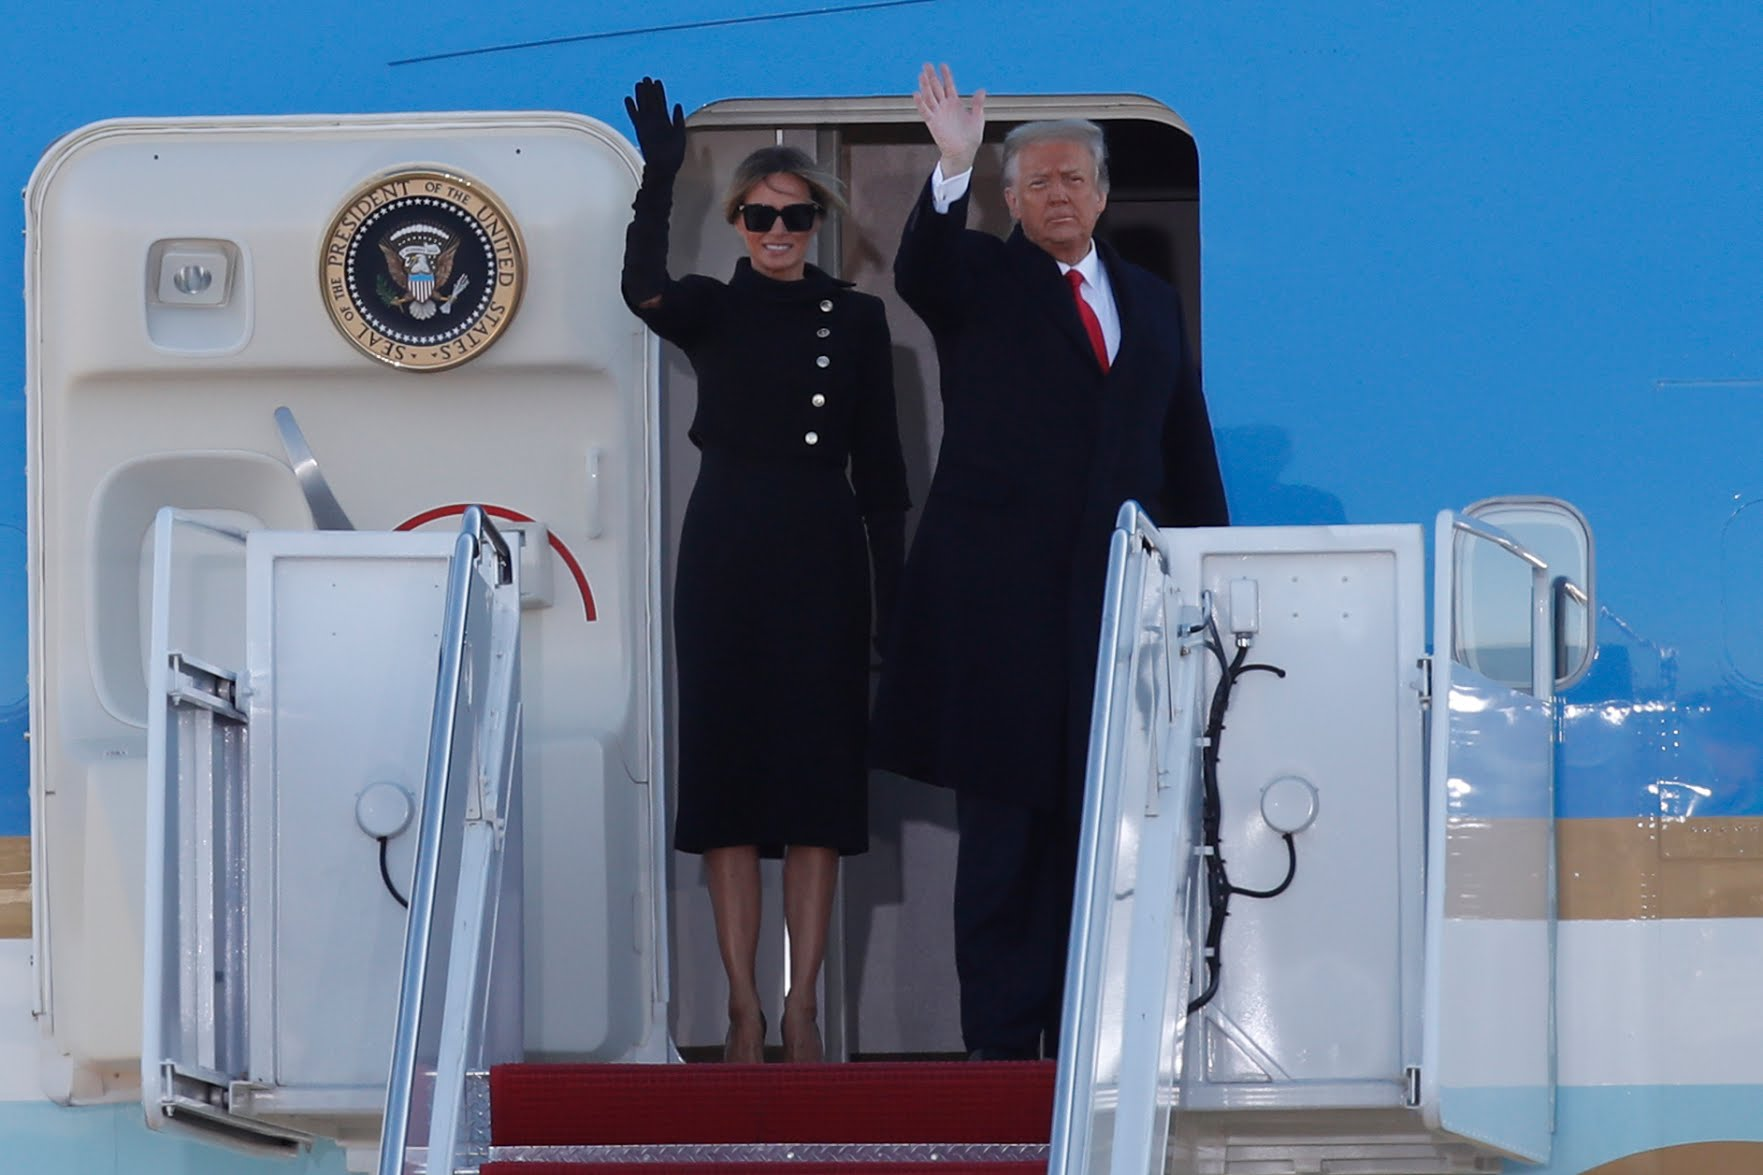 President Donald Trump and first lady Melania Trump wave to a crowd as they board Air Force One at Andrews Air Force Base, Maryland on Wednesday ahead of Joe Biden's inauguration. Breaking with long-standing tradition, Trump is not attending the inauguration. (Luis M. Alvarez/AP)